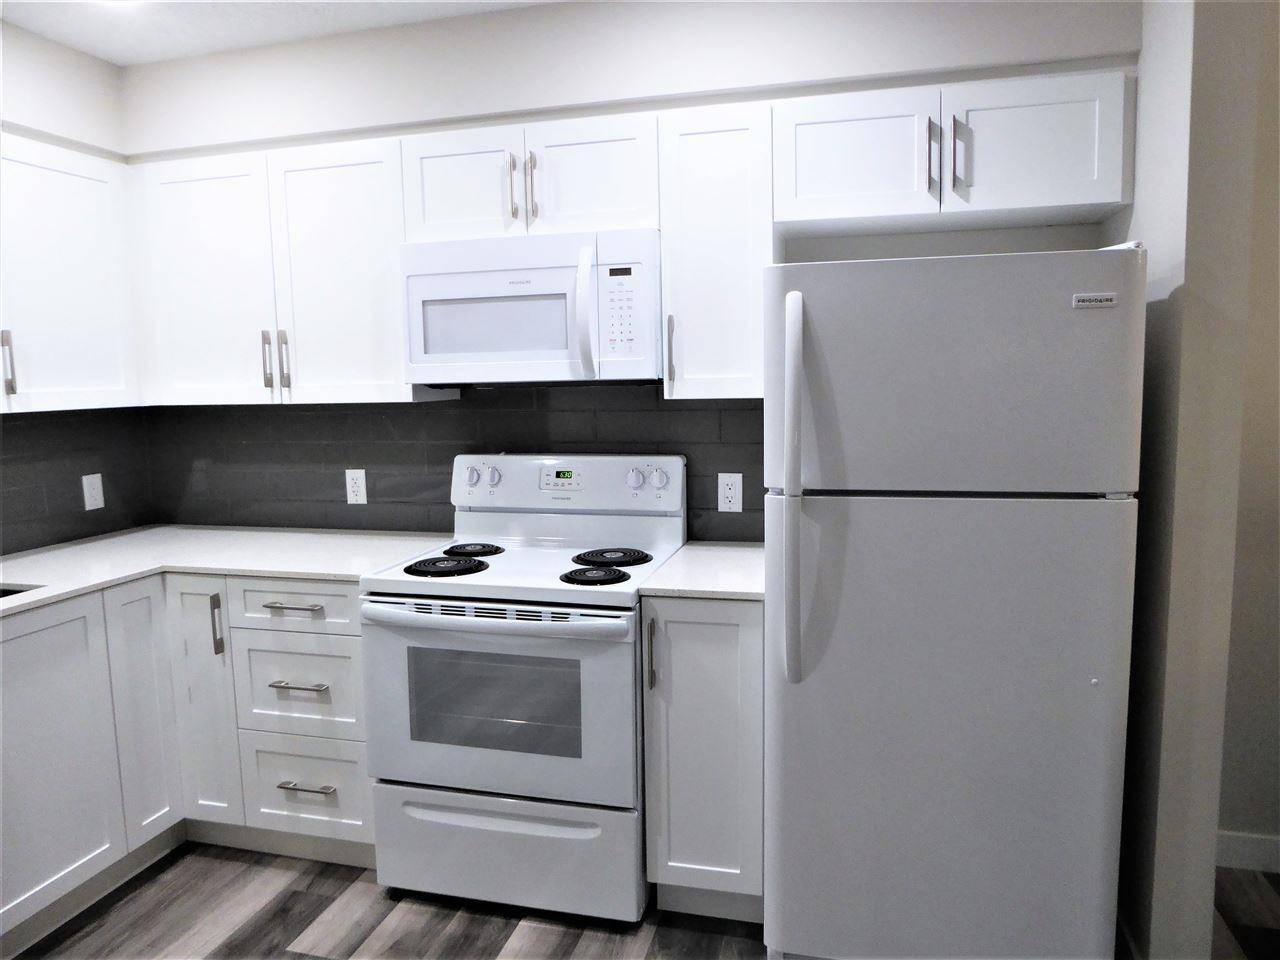 Condo for sale at 11511 27 Ave Nw Unit 407 Edmonton Alberta - MLS: E4181688